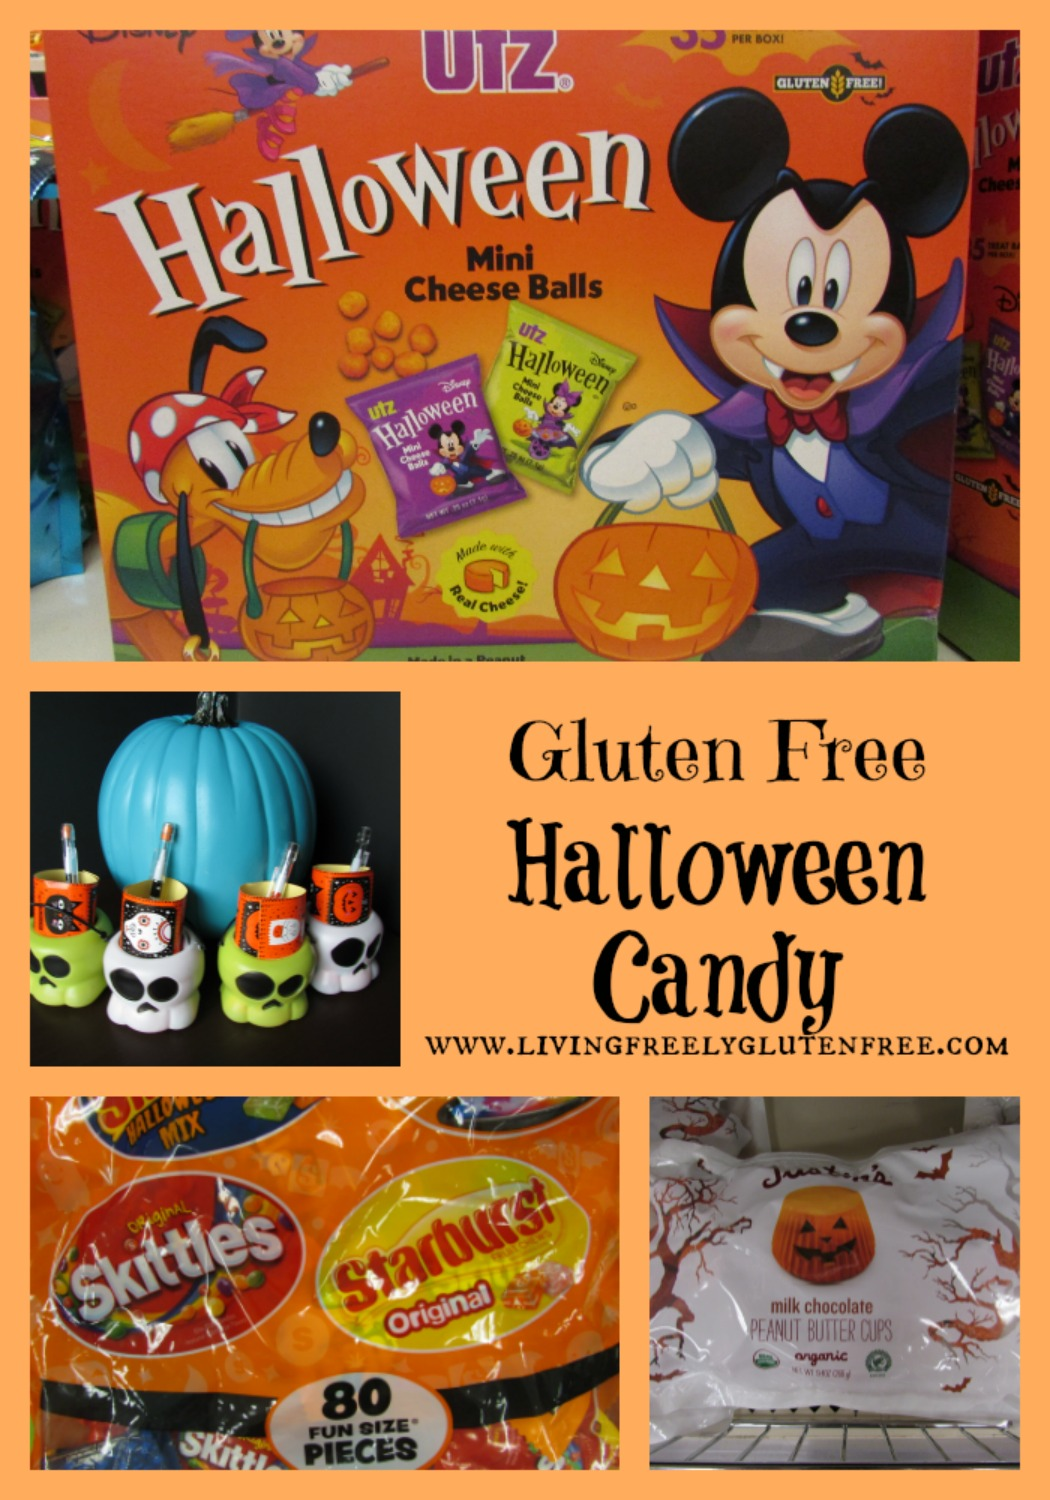 on top of being gluten free my son also doesnt get food coloring often it changes his mood dramatically however i do allow it in very small doses on - What Halloween Candy Is Gluten Free